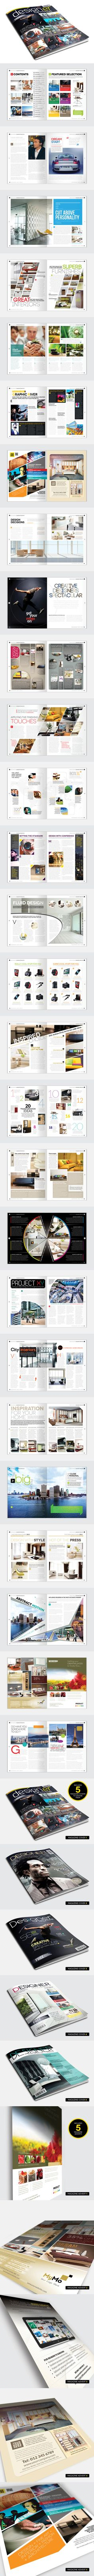 Magazine Template - InDesign 56 Page Layout V2 by BoxedCreative , via Behance